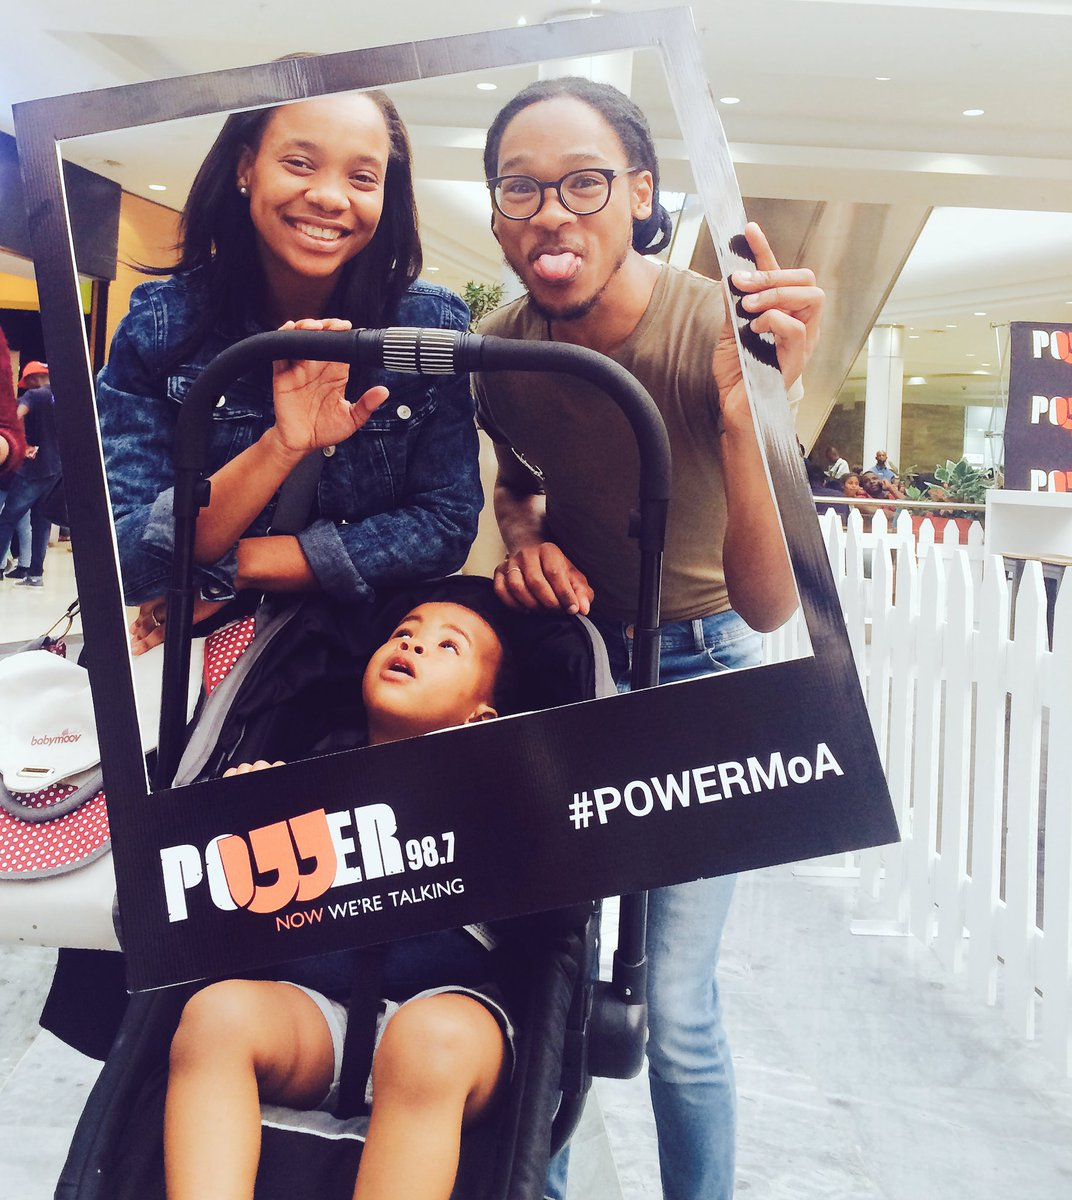 As we&#39;re doing the usual wt @KhanyieDayi at #MallOfAfrica -we bump into the leading innovator in #radio  #broadcasting @Powerfm987 #PowerMoA<br>http://pic.twitter.com/VJh129MUb2